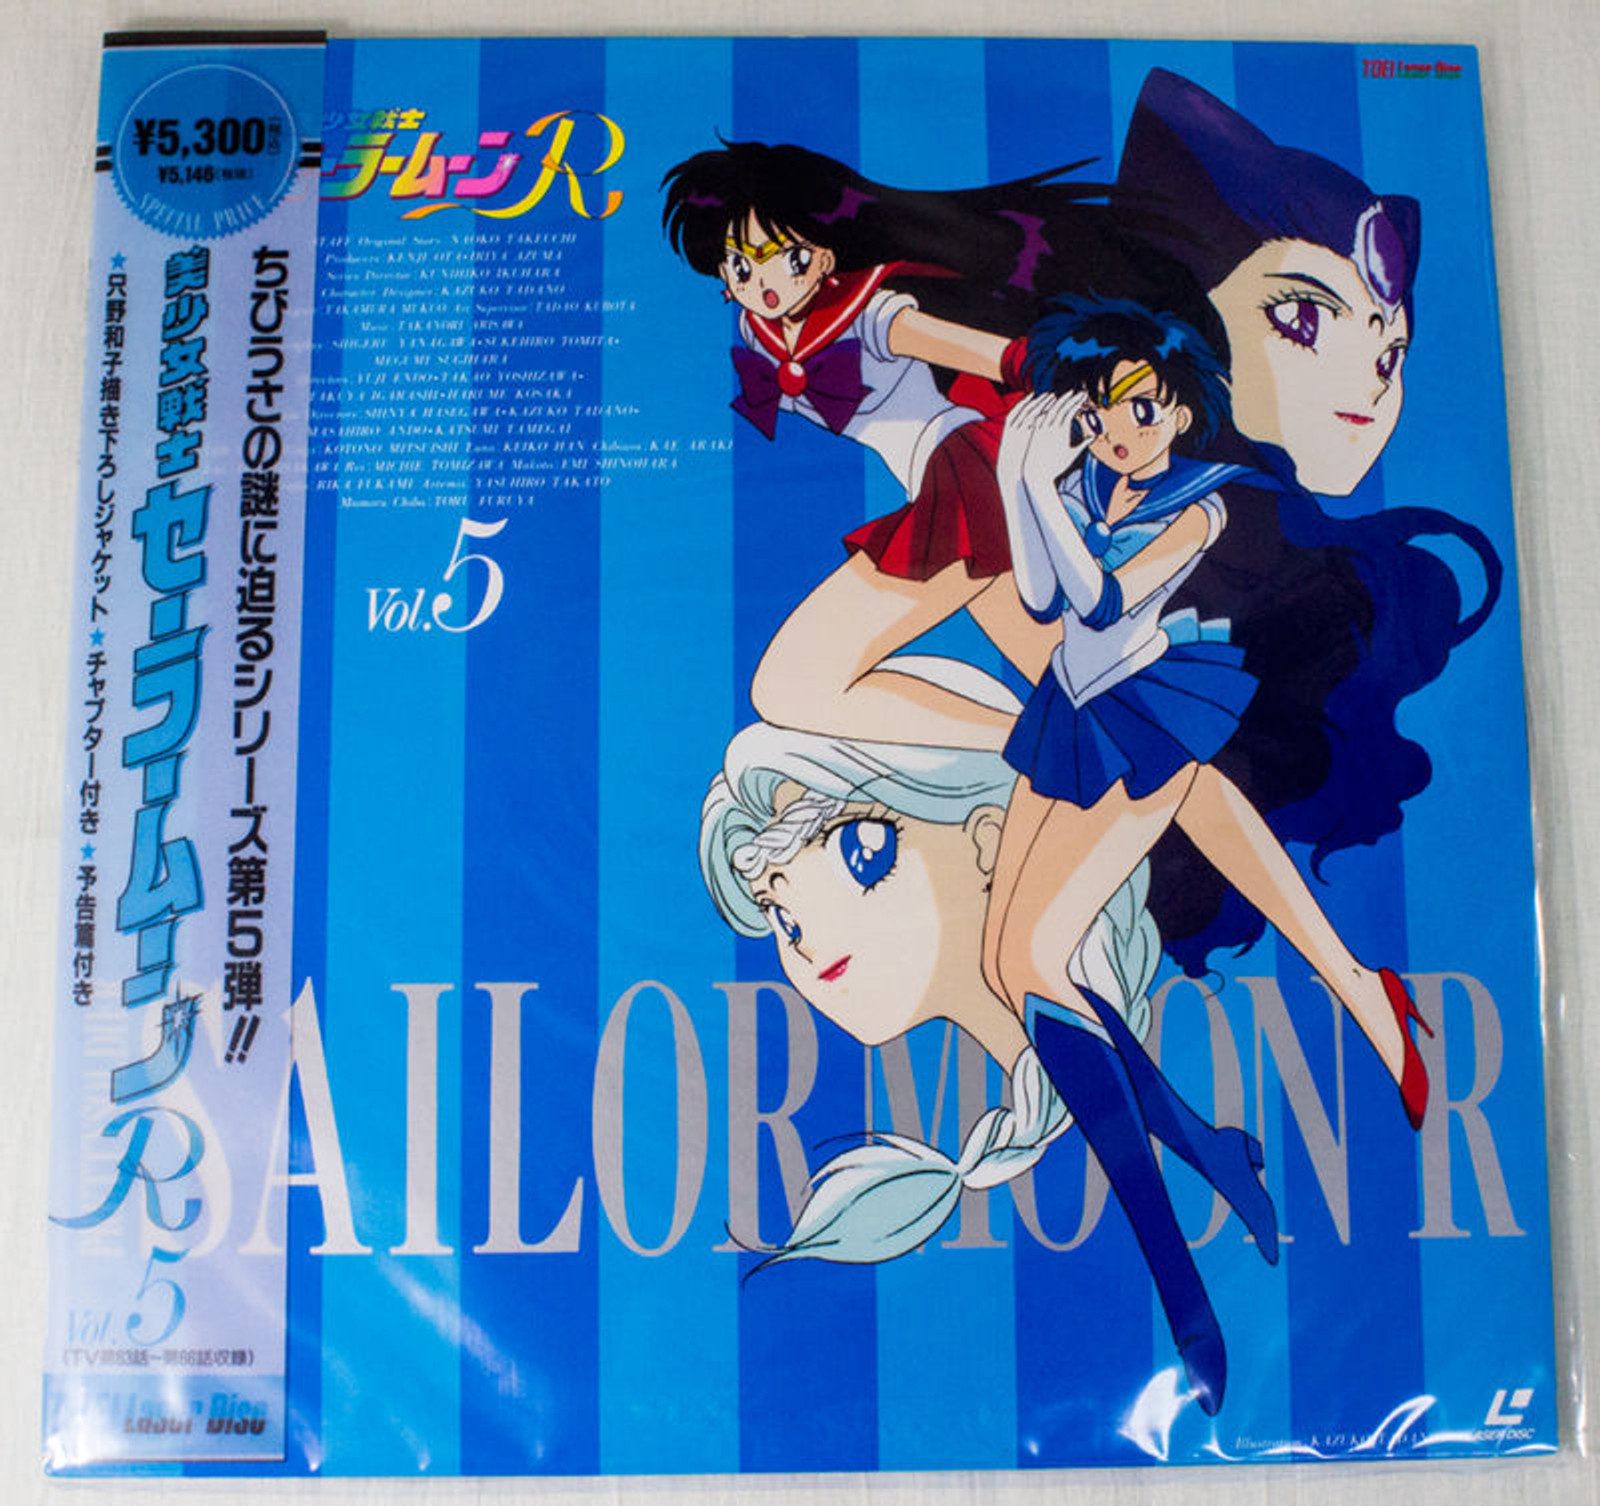 Sailor Moon R Vol.5 Laser Disc LD JAPAN ANIME MANGA